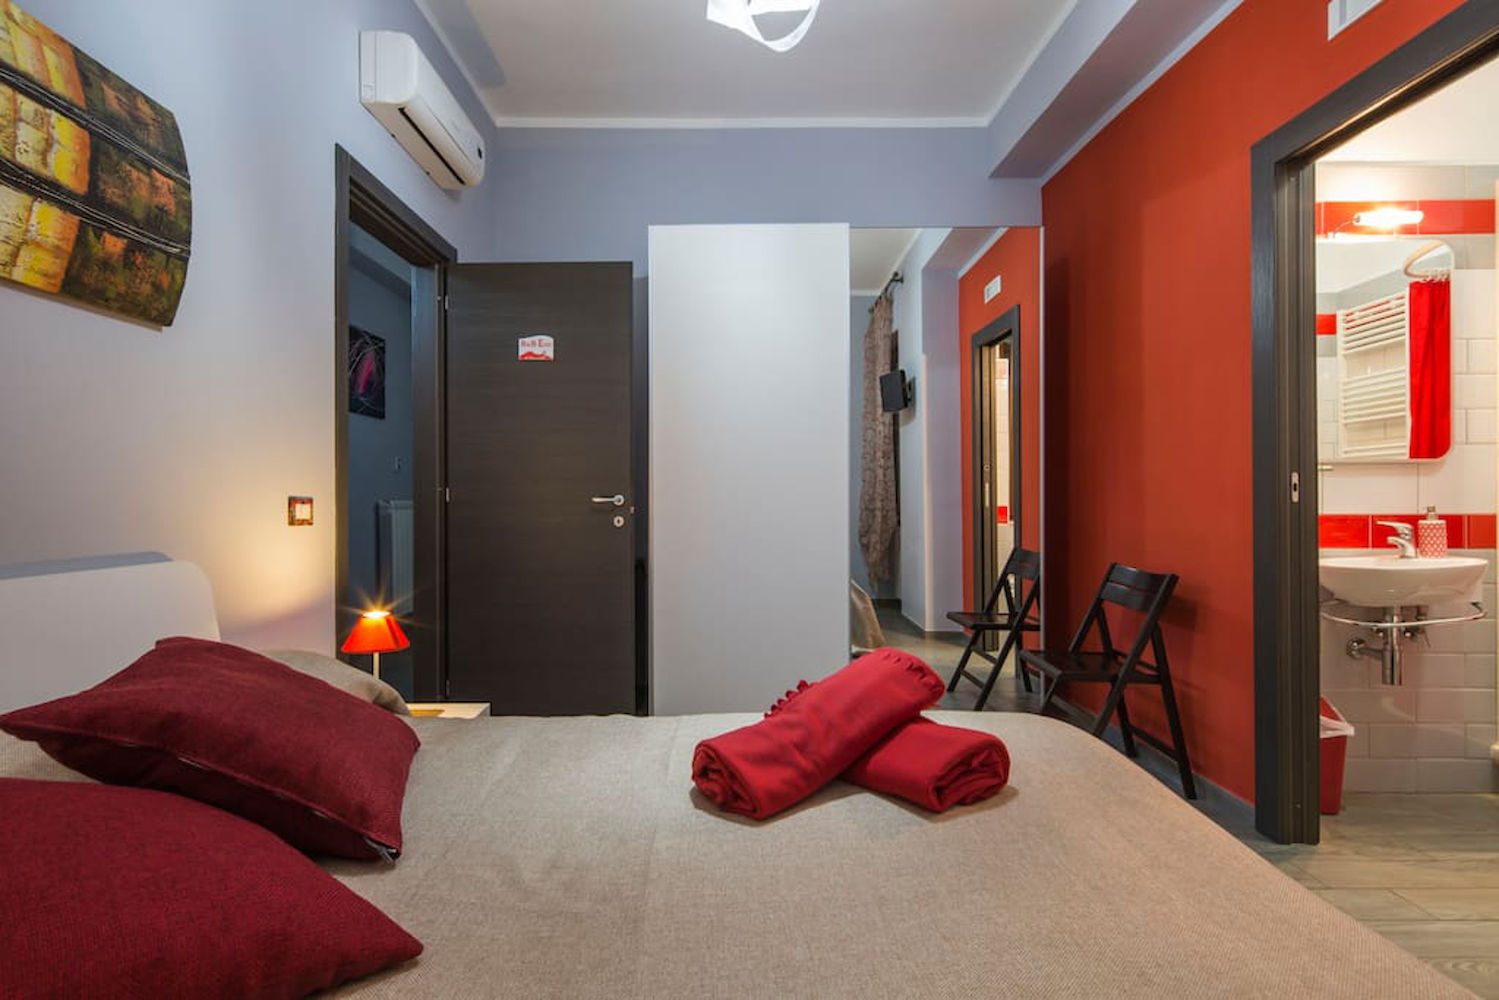 Bed and Breakfast Eco Pompei, standard double red room.